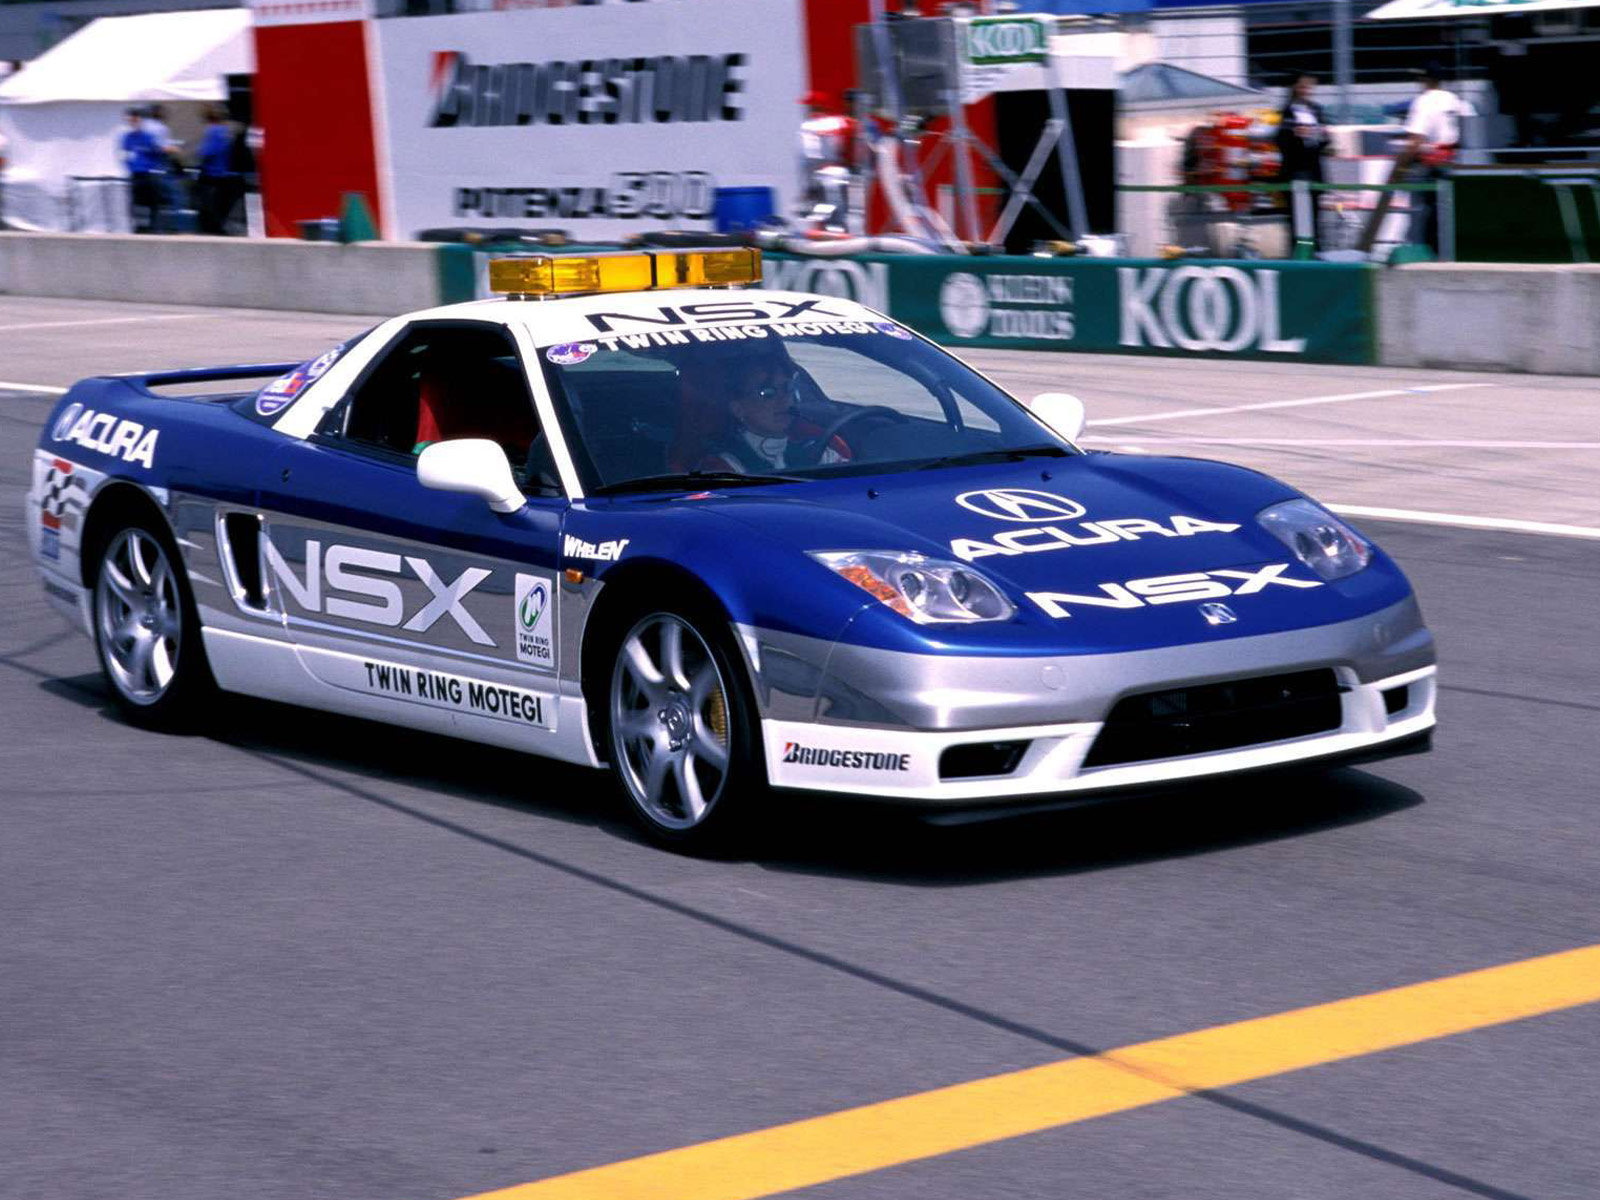 2005 Acura NSX photo - 10